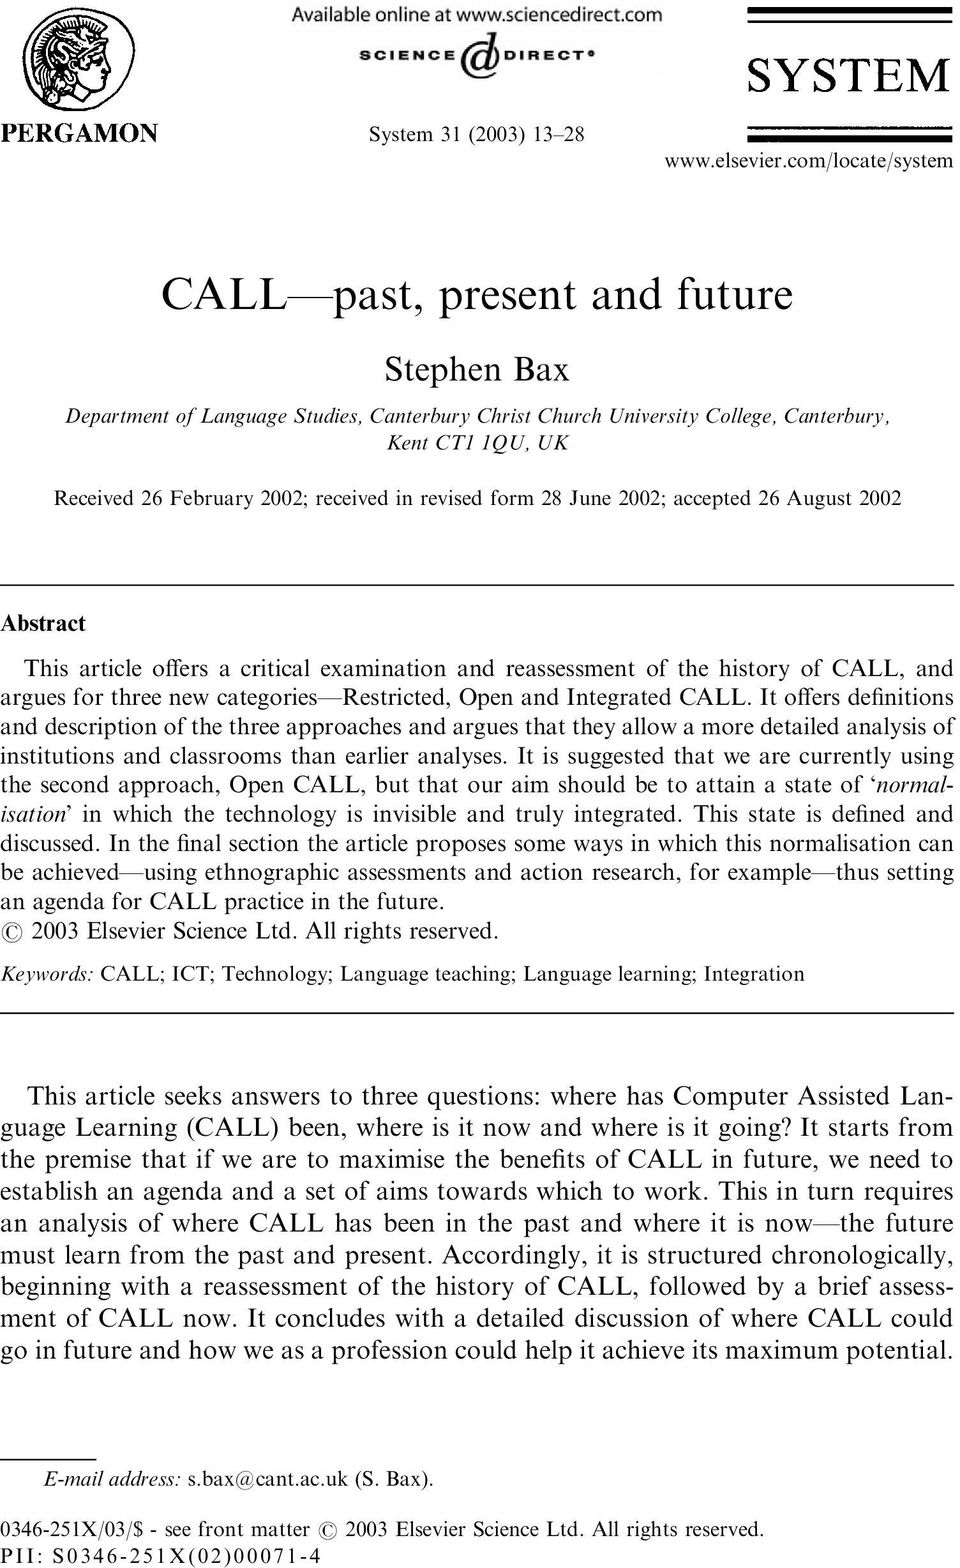 received in revised form28 June 2002; accepted 26 August 2002 Abstract This article offers a critical examination and reassessment of the history of CALL, and argues for three new categories